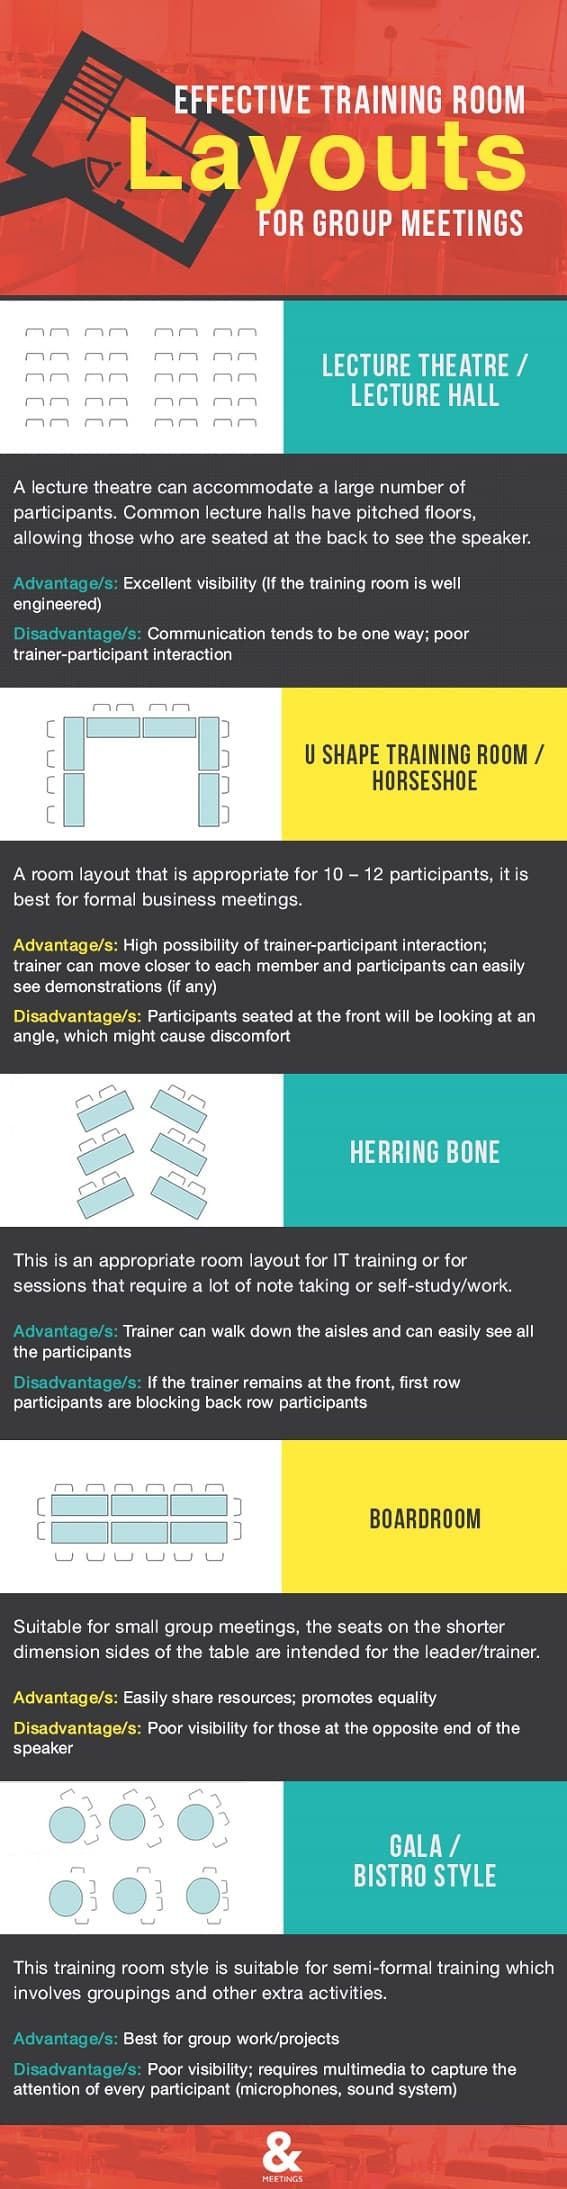 Effective Training Room Layouts for Group Meetings